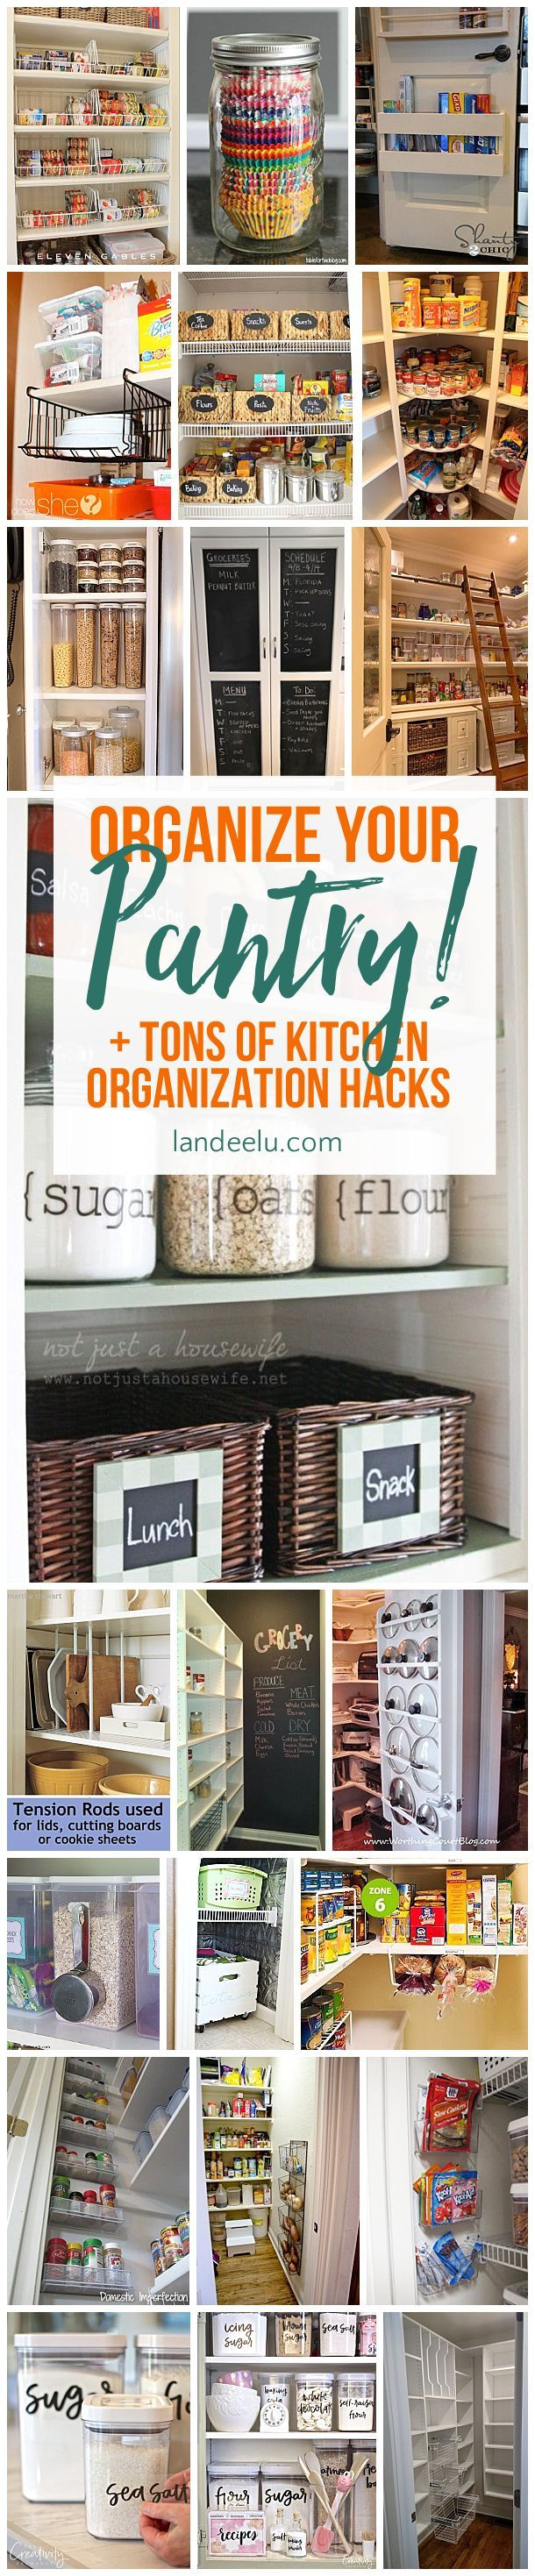 Kitchen Organization Ideas and Hacks | Pot lids, Organizations and ...